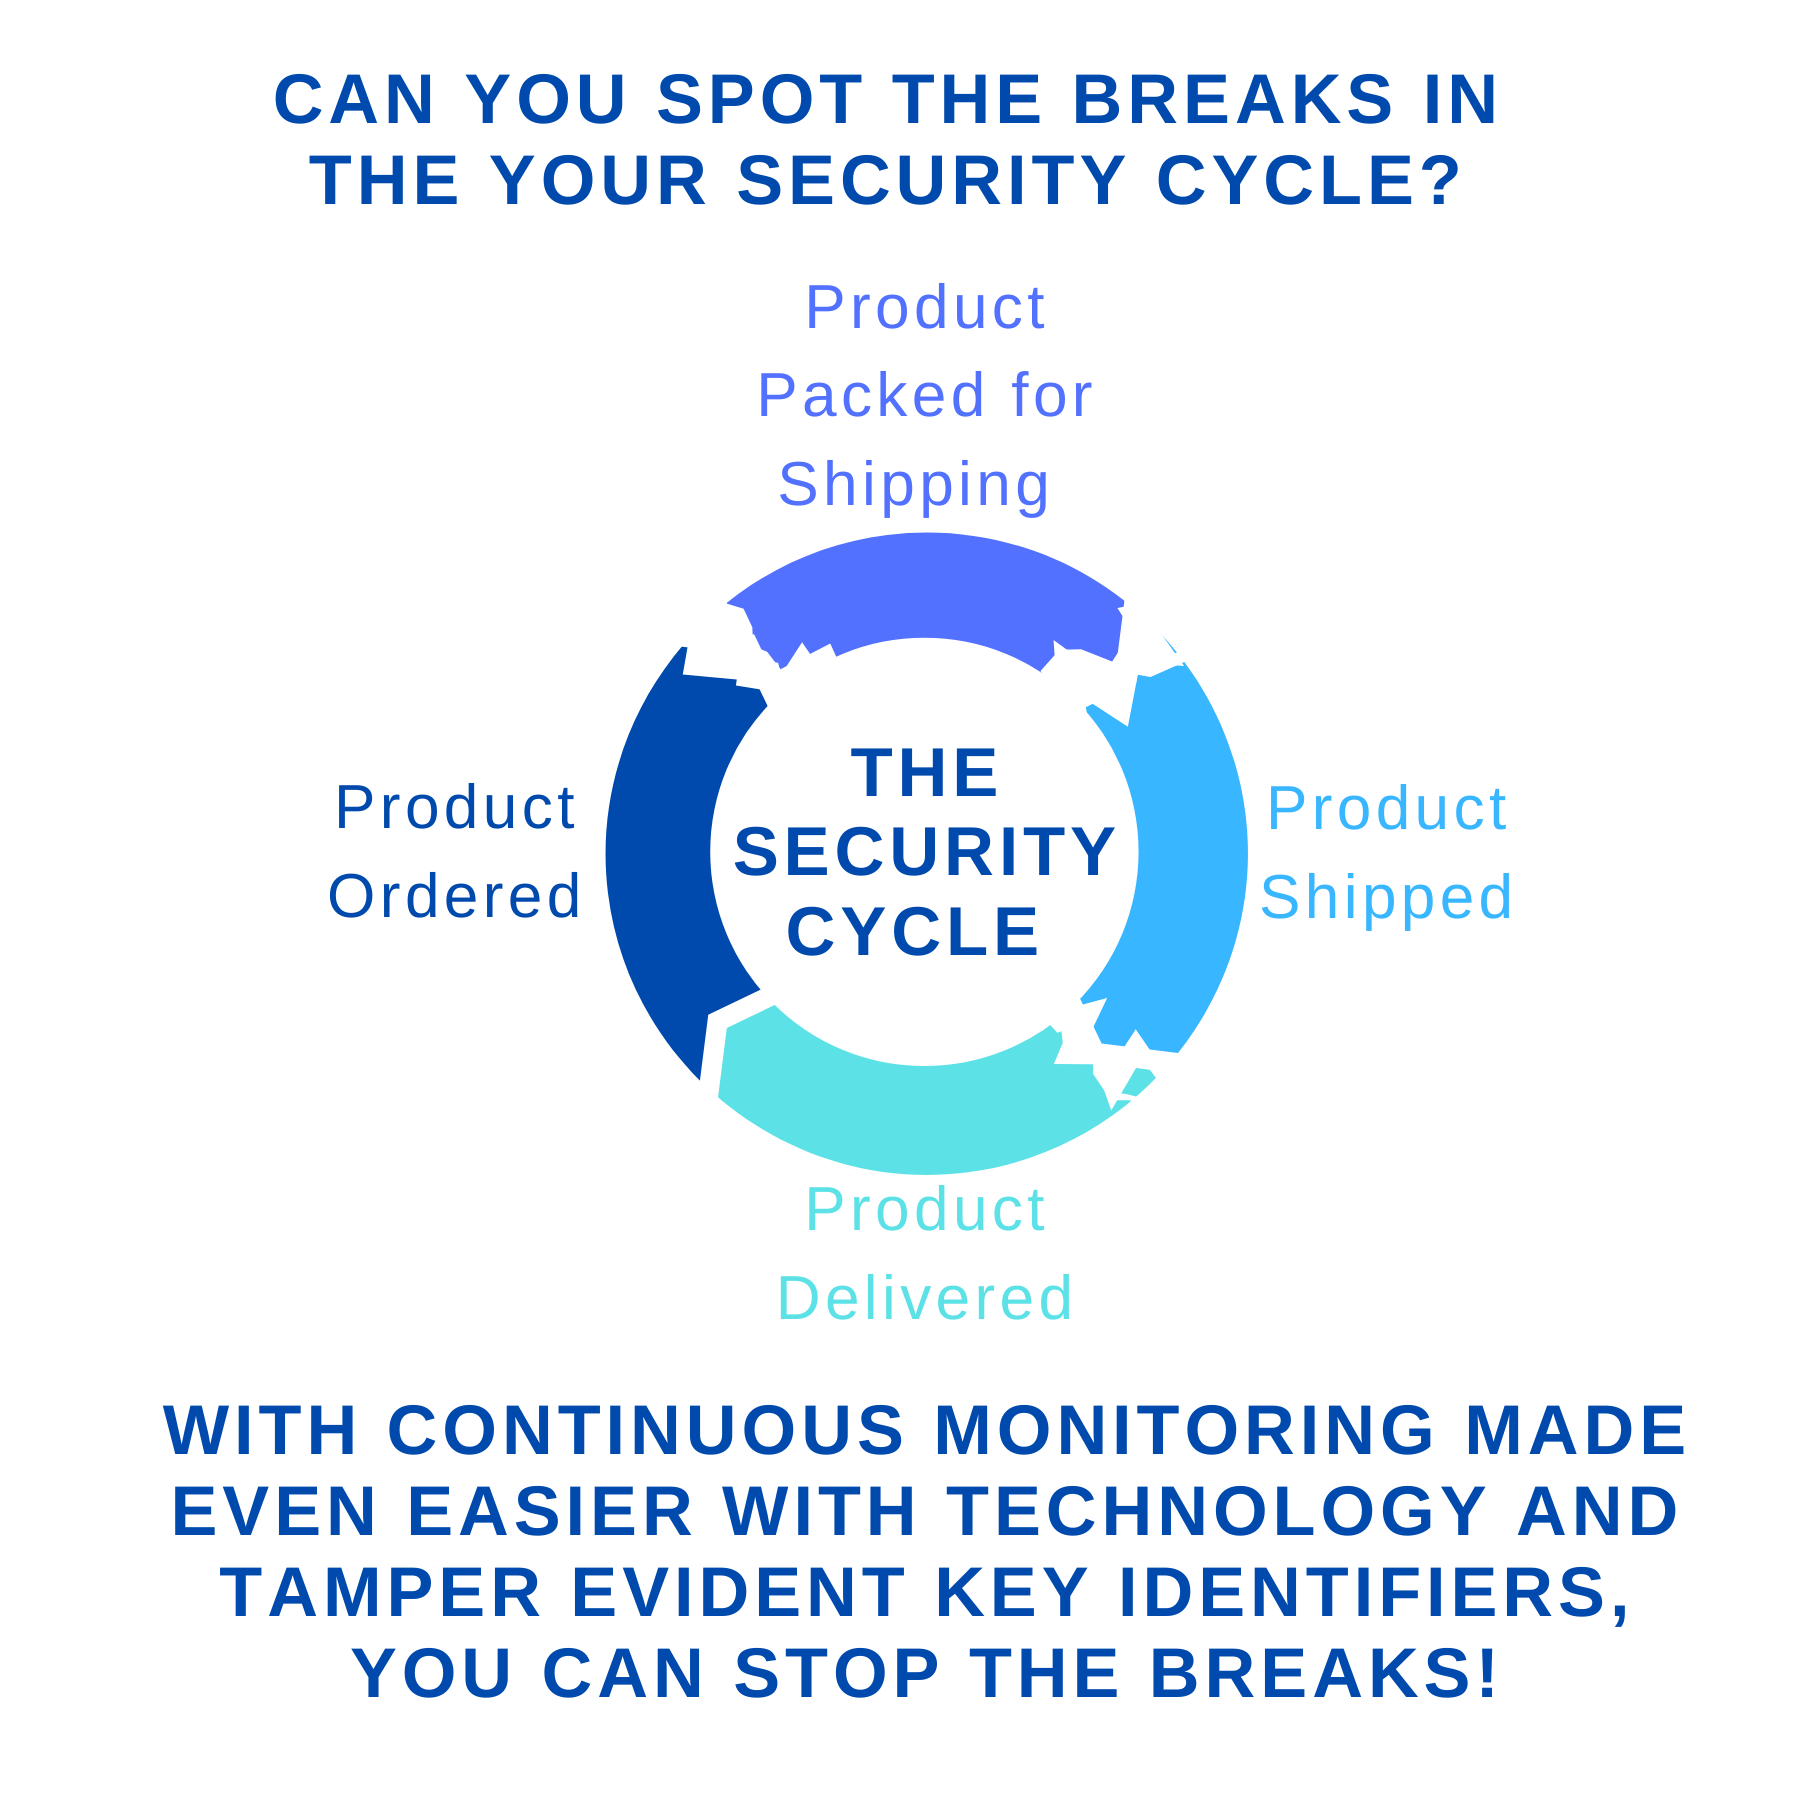 Tamper Evident Security Cycle